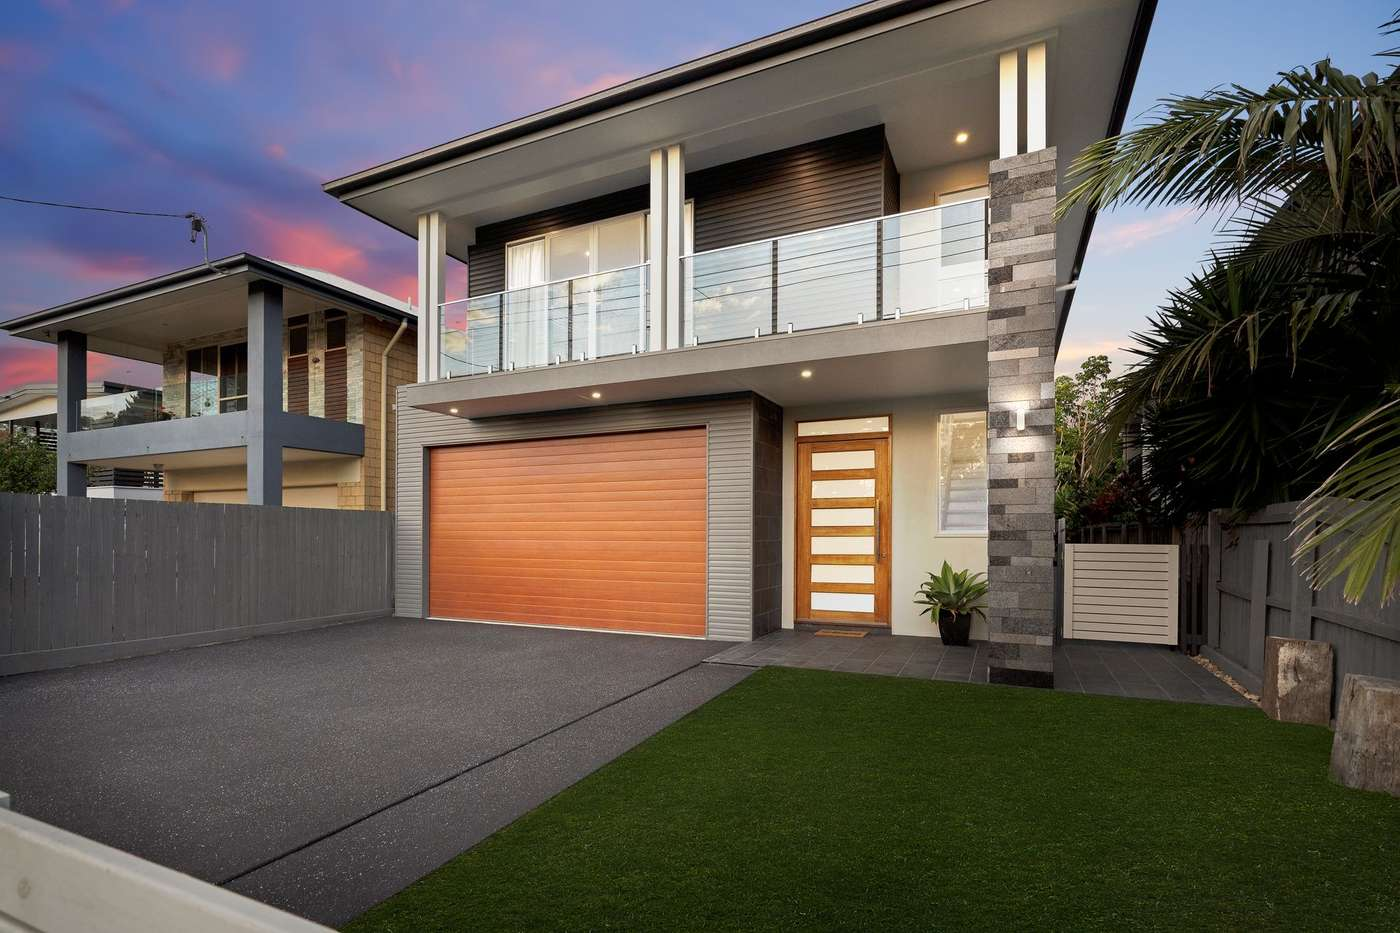 Main view of Homely house listing, 73 Cavell Street, Birkdale, QLD 4159